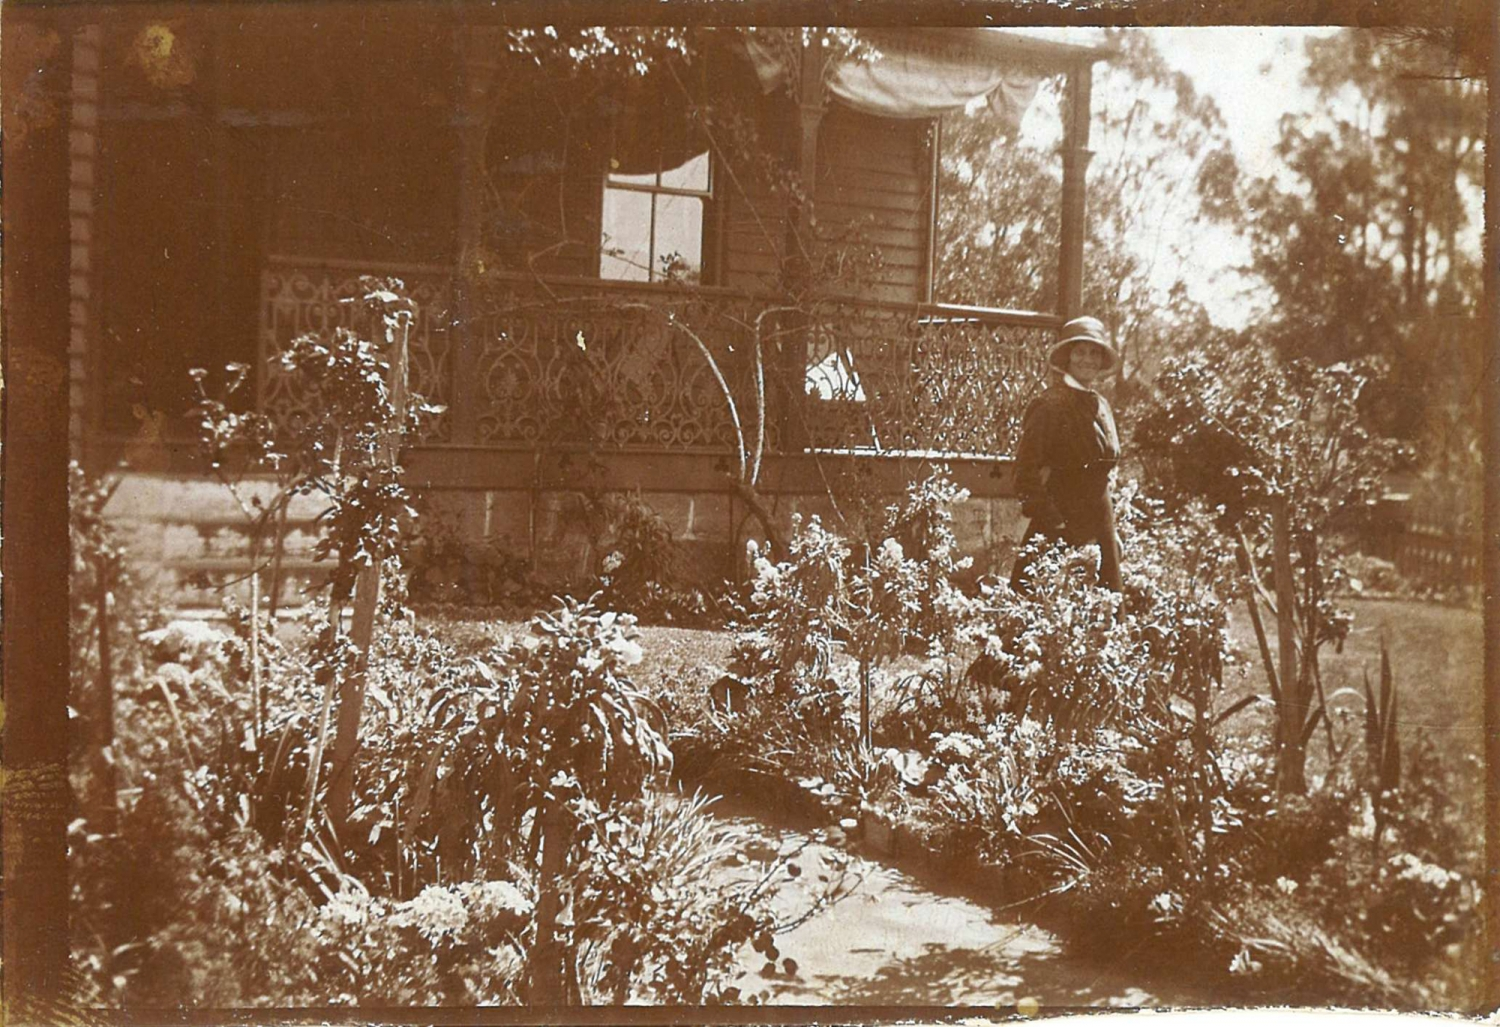 Black and white photo of figure in garden in front of house.